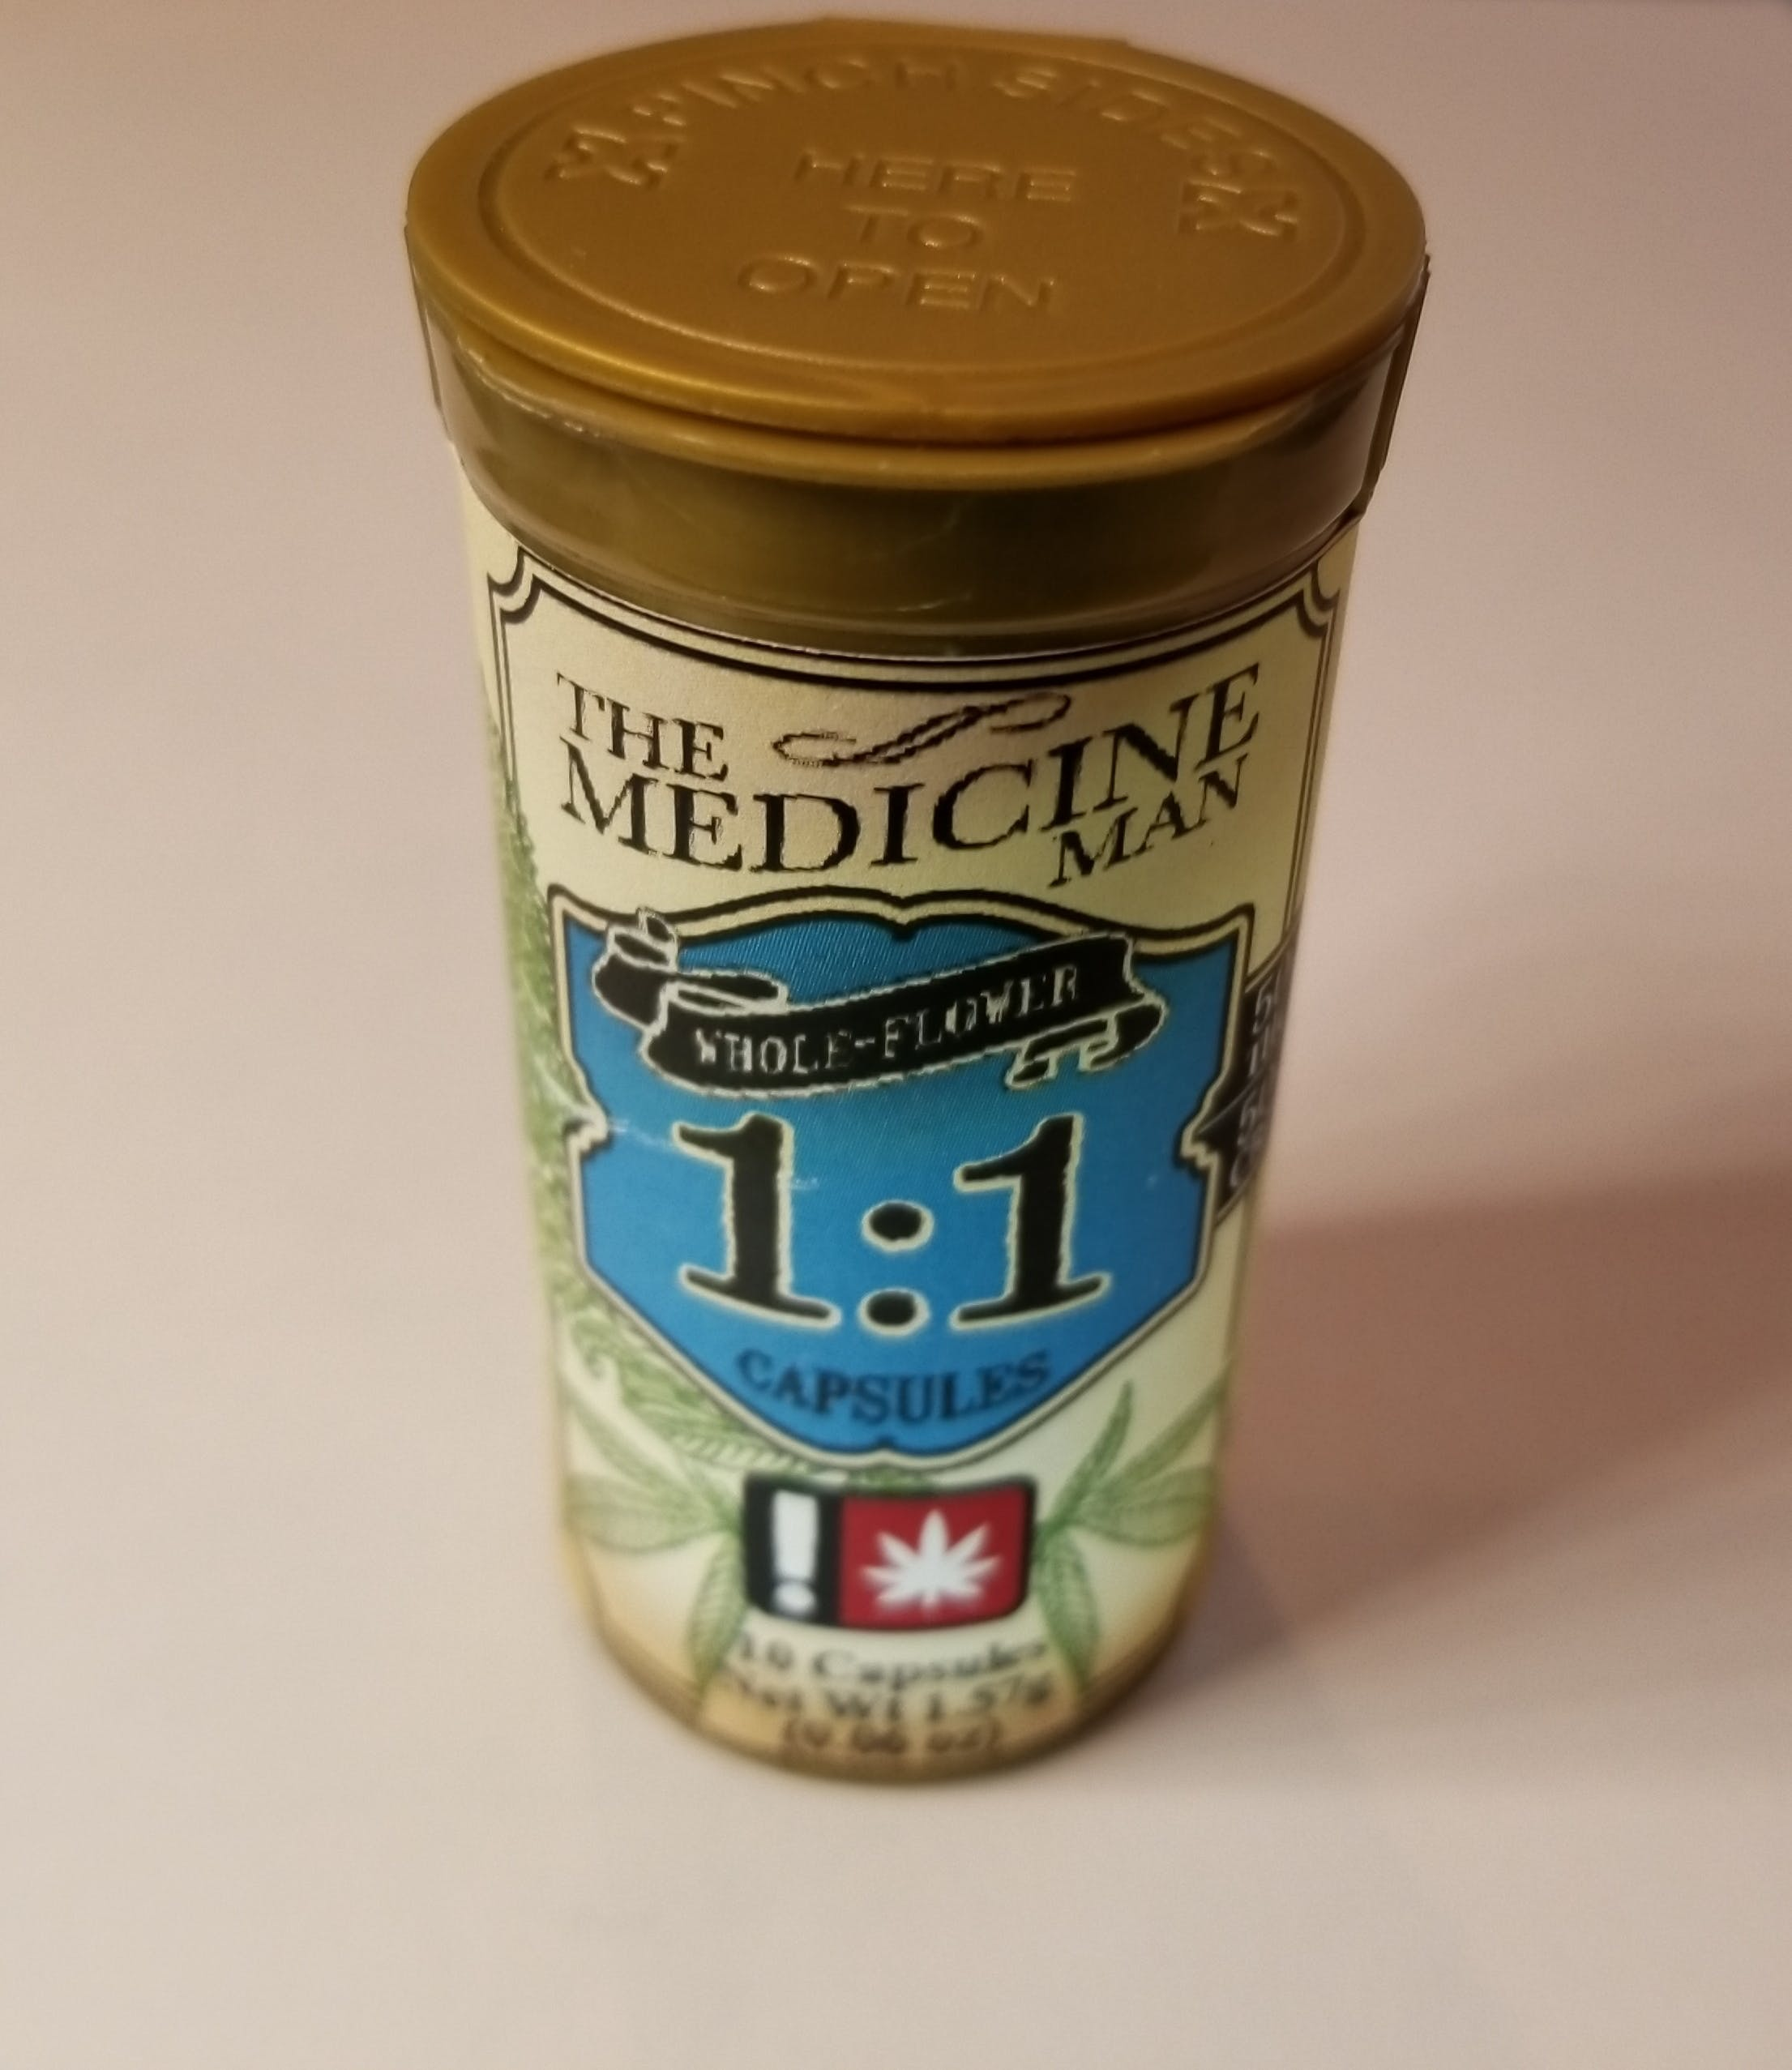 marijuana-dispensaries-new-millennium-in-eugene-medicine-man-11-capsules